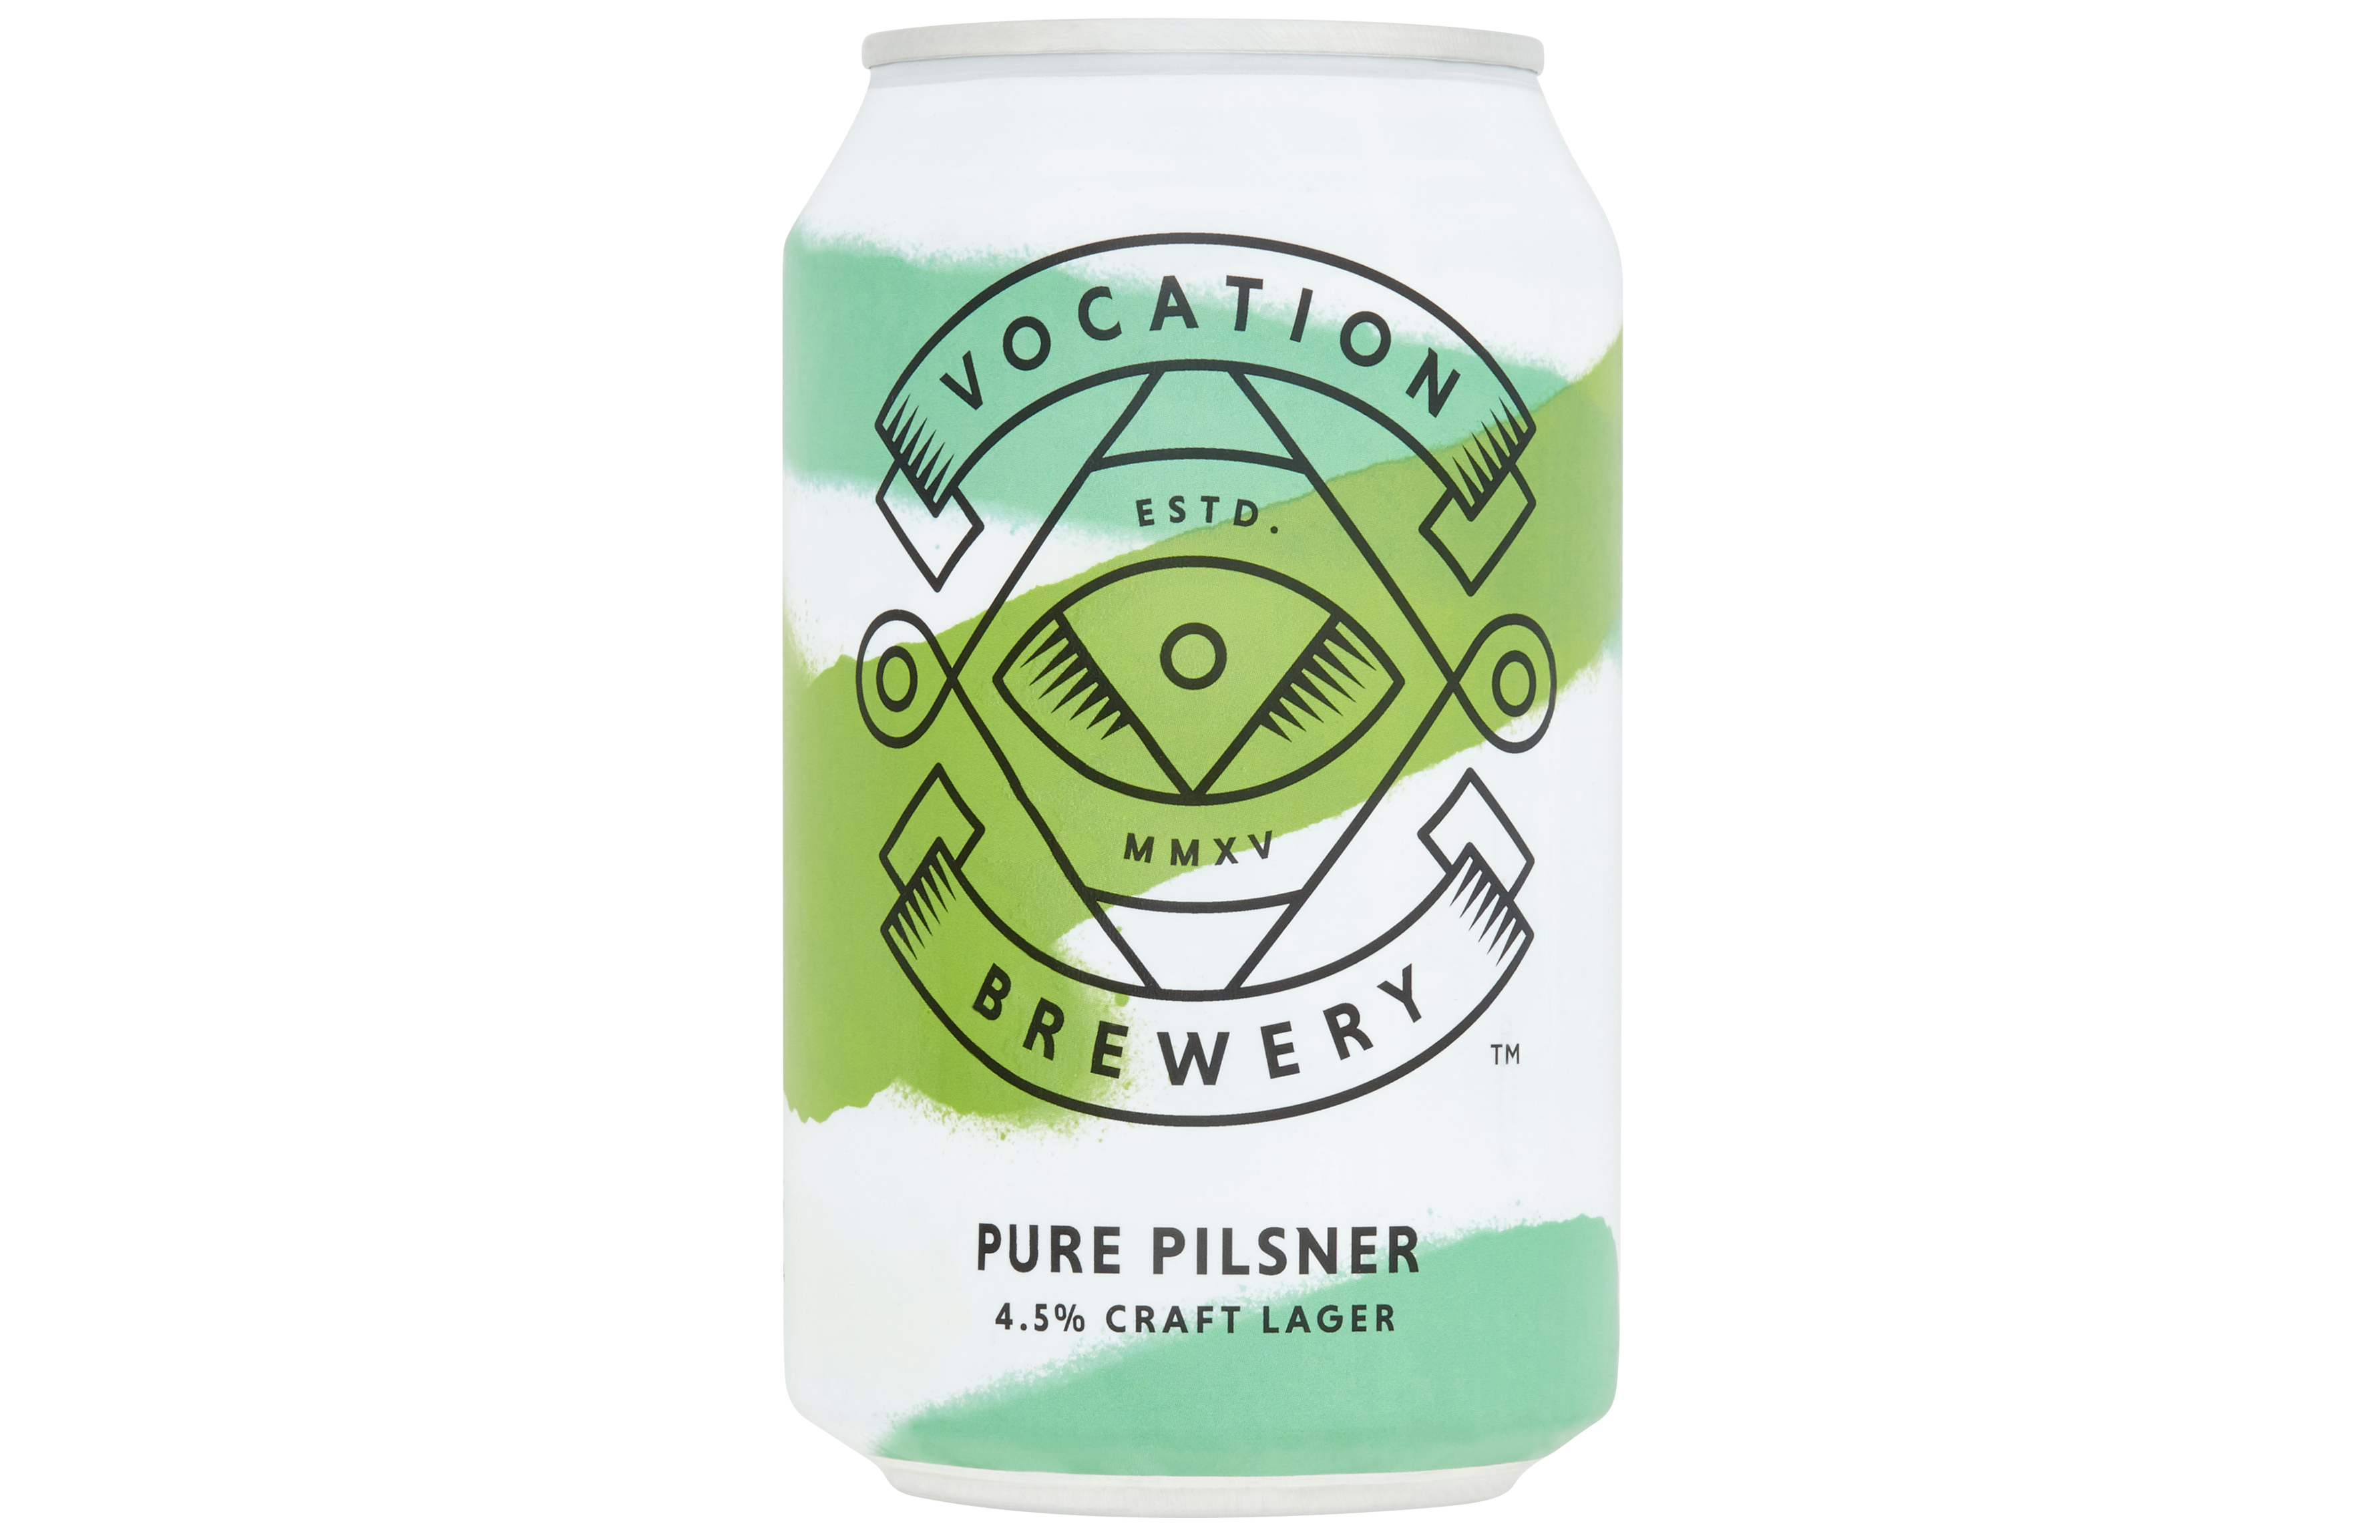 A can of Vocation Brewery's Pure Pilsner, Tesco